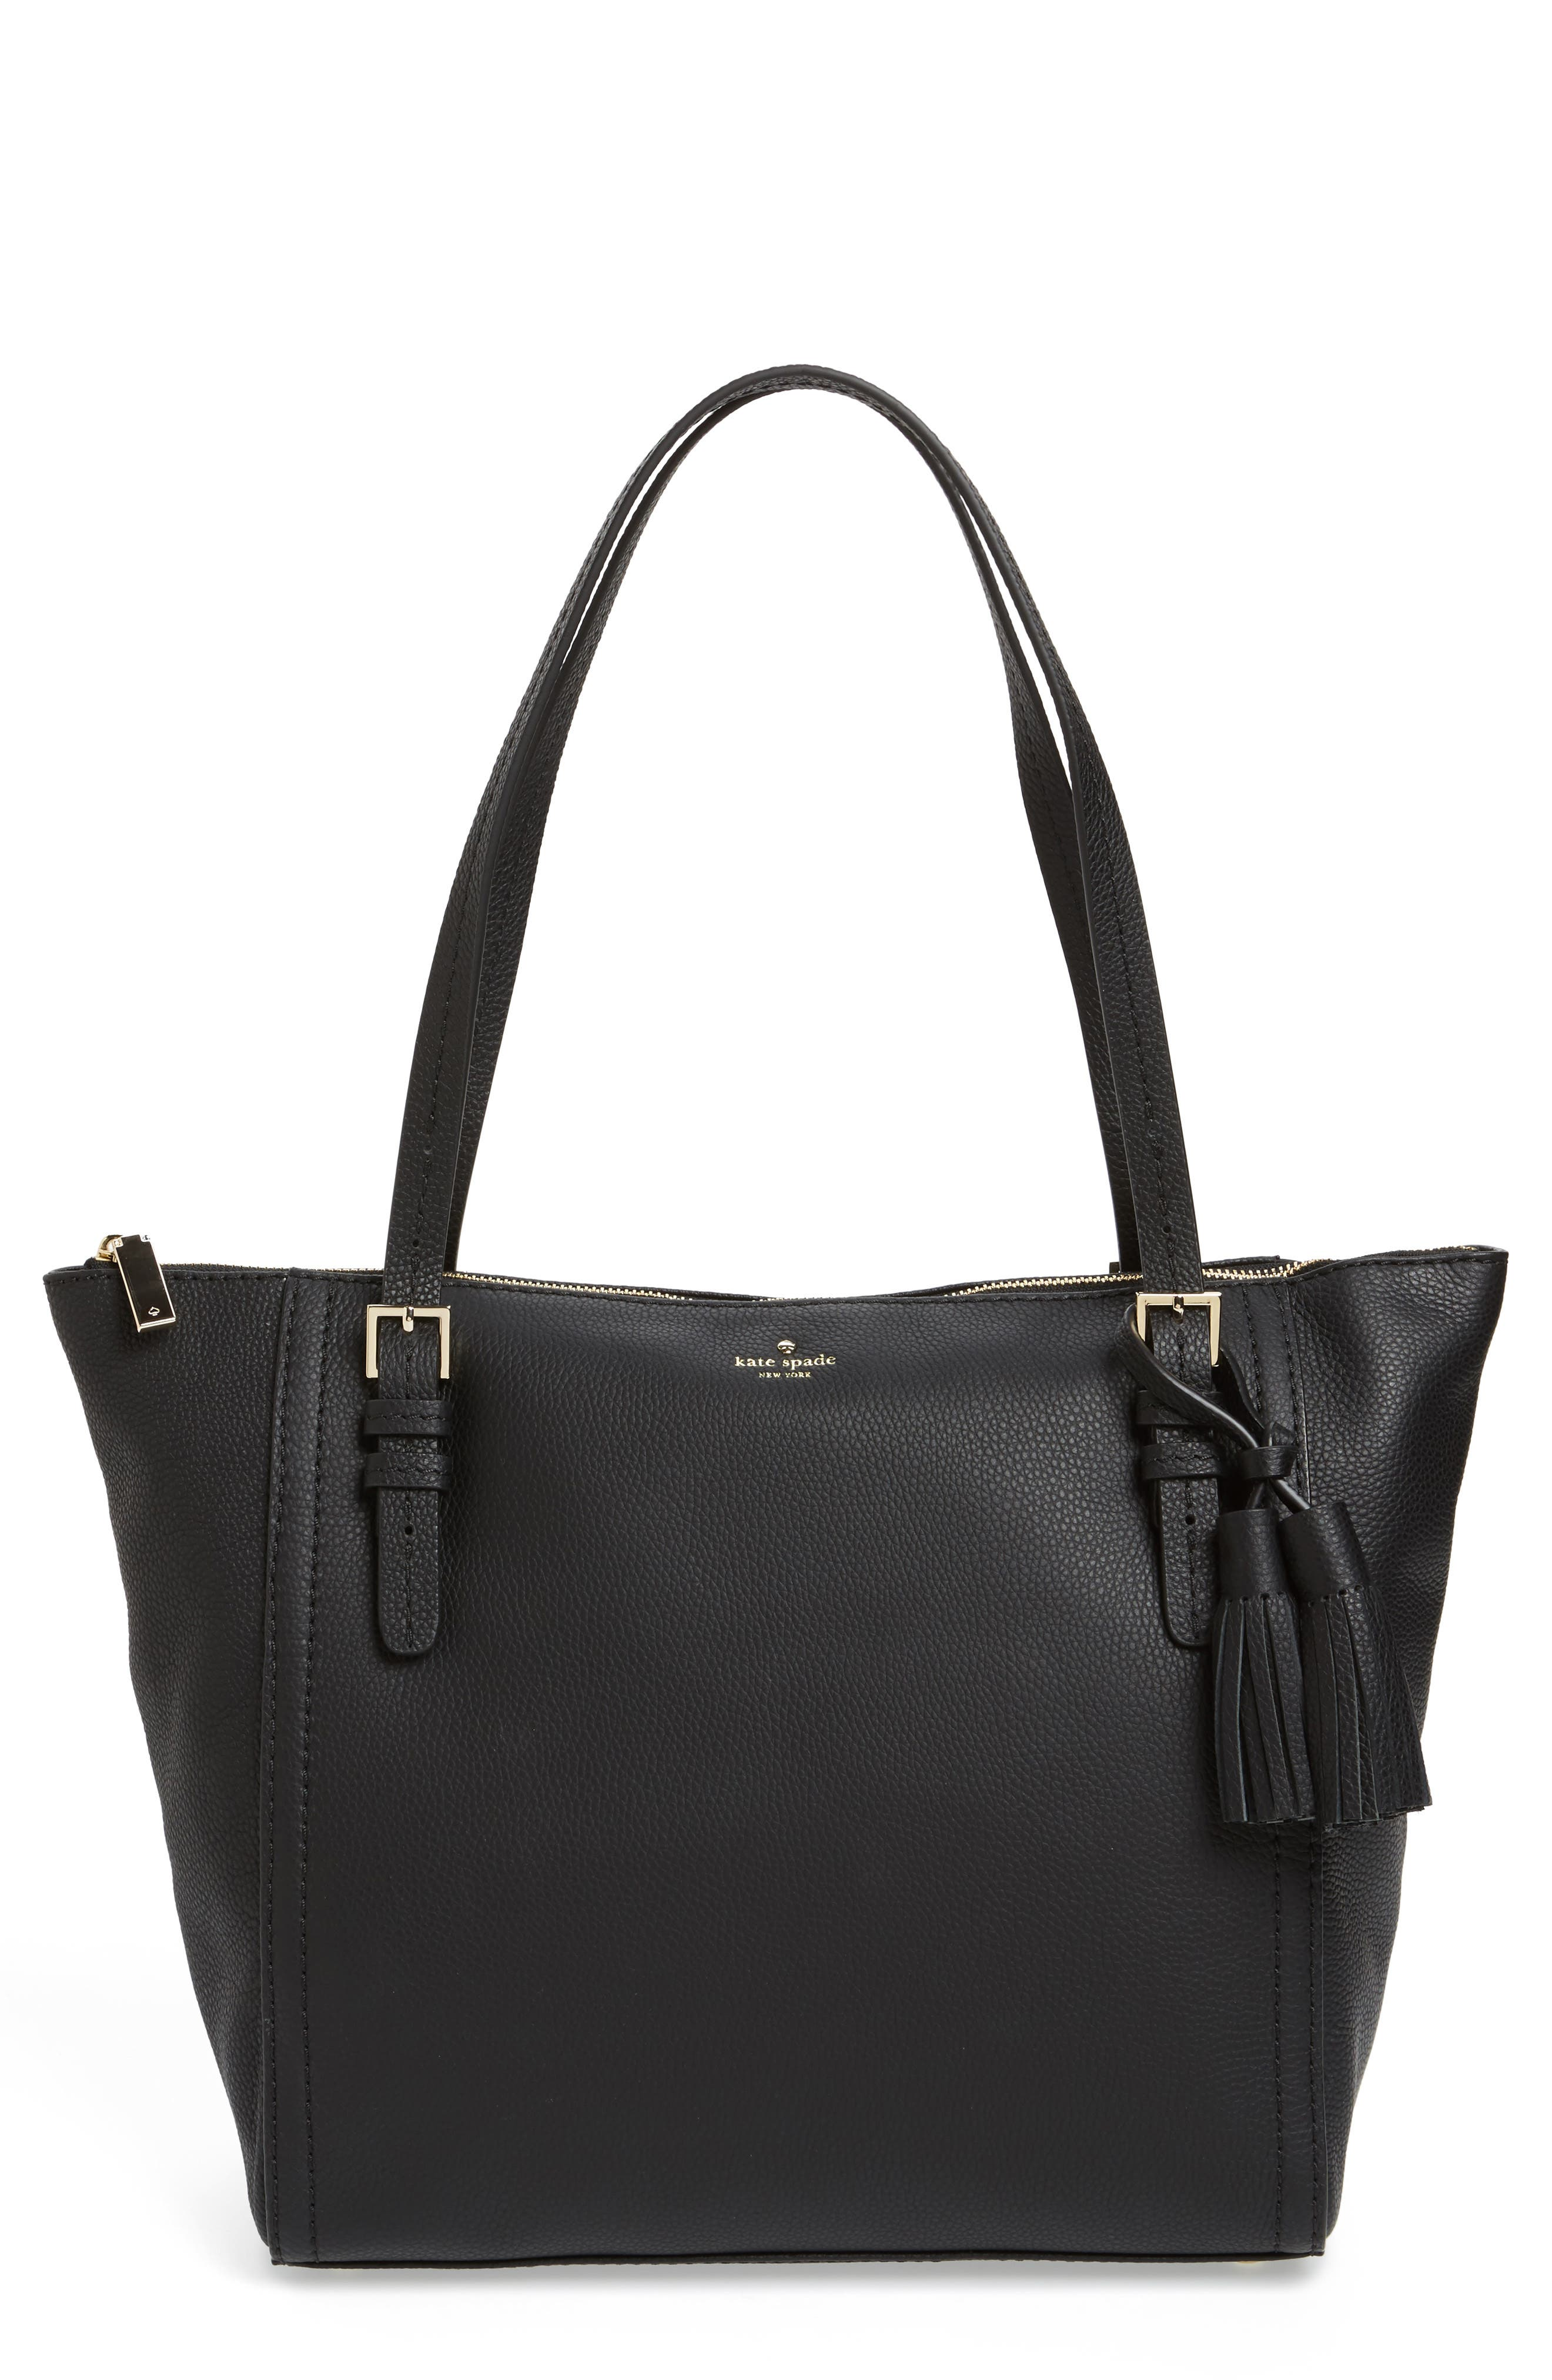 orchard street - maya leather tote, Main, color, 001